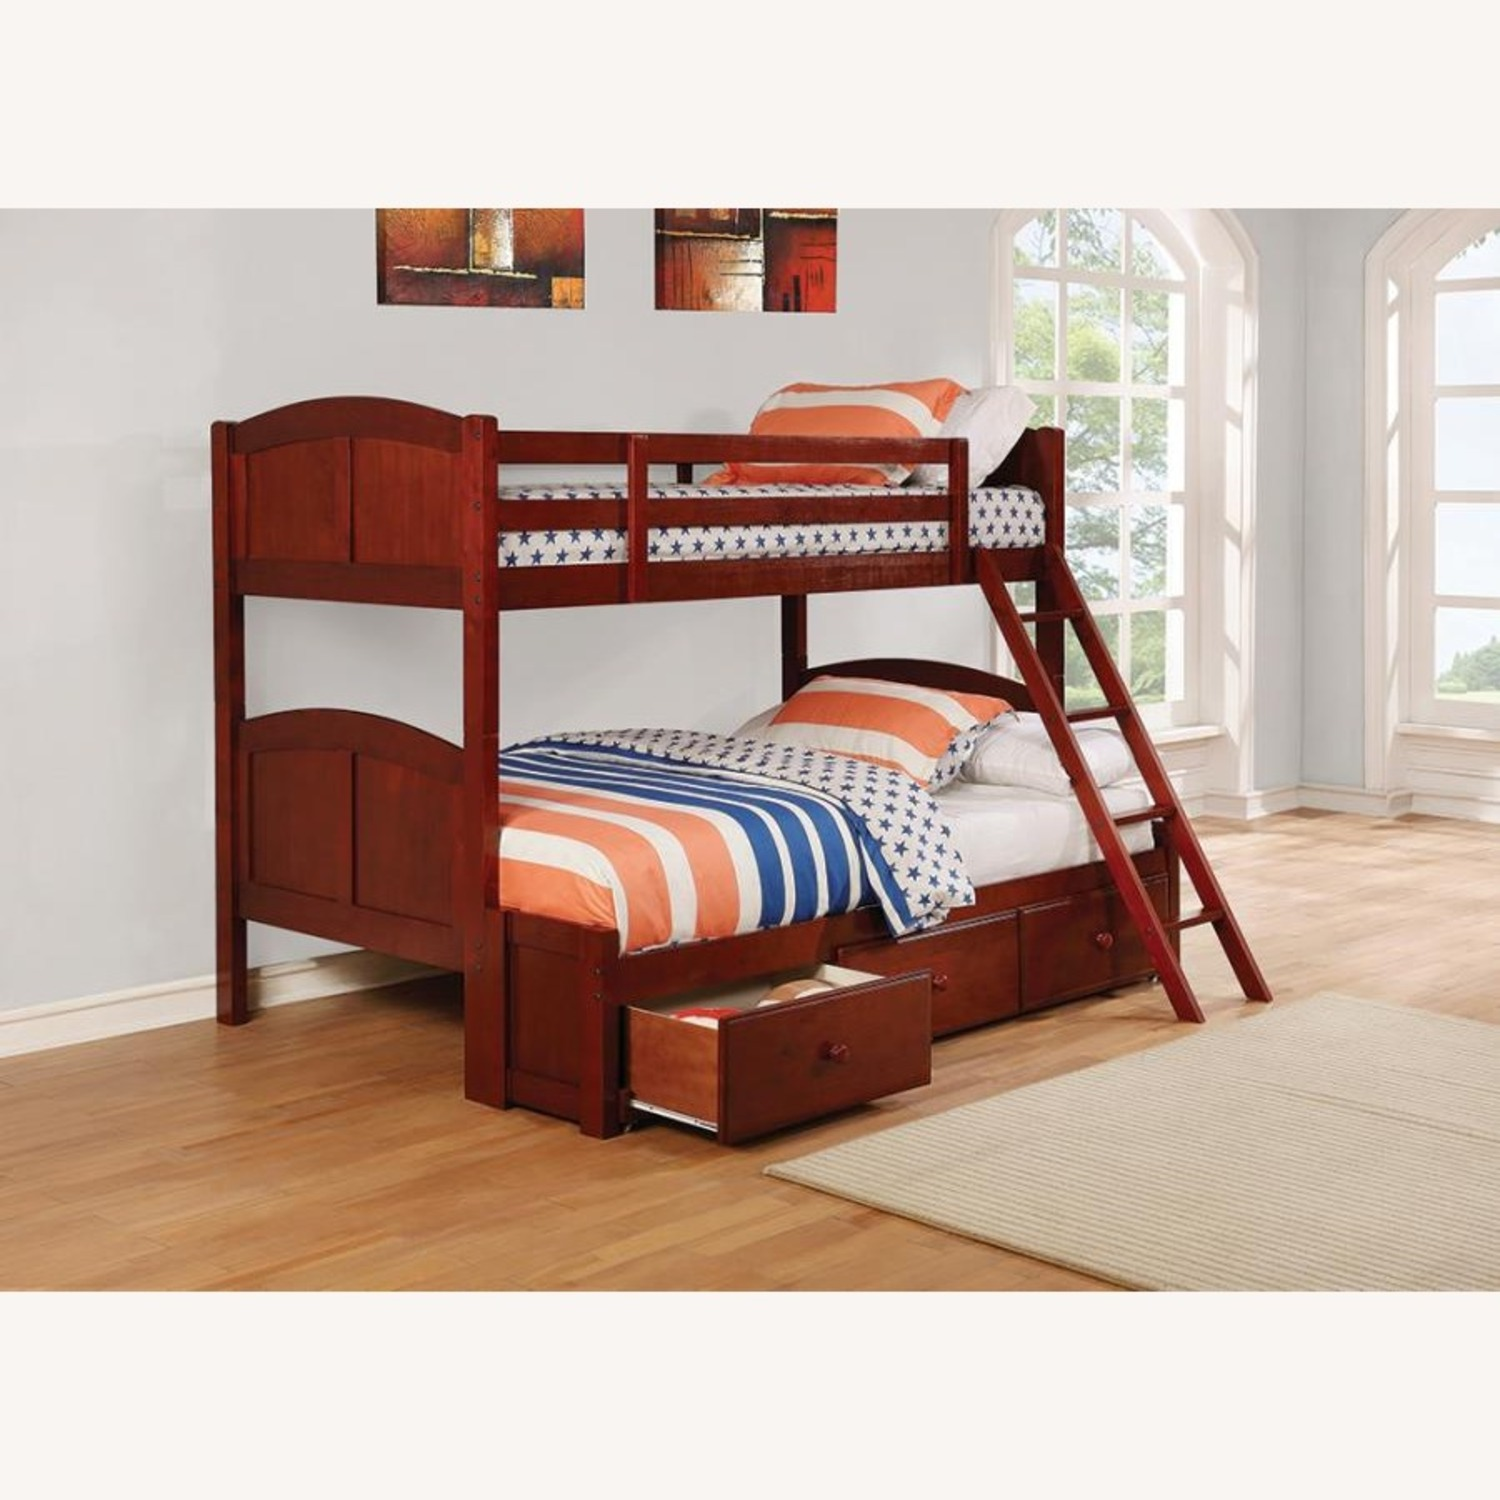 Twin Over Full Bunk Bed In Warm Chestnut Finish - image-1